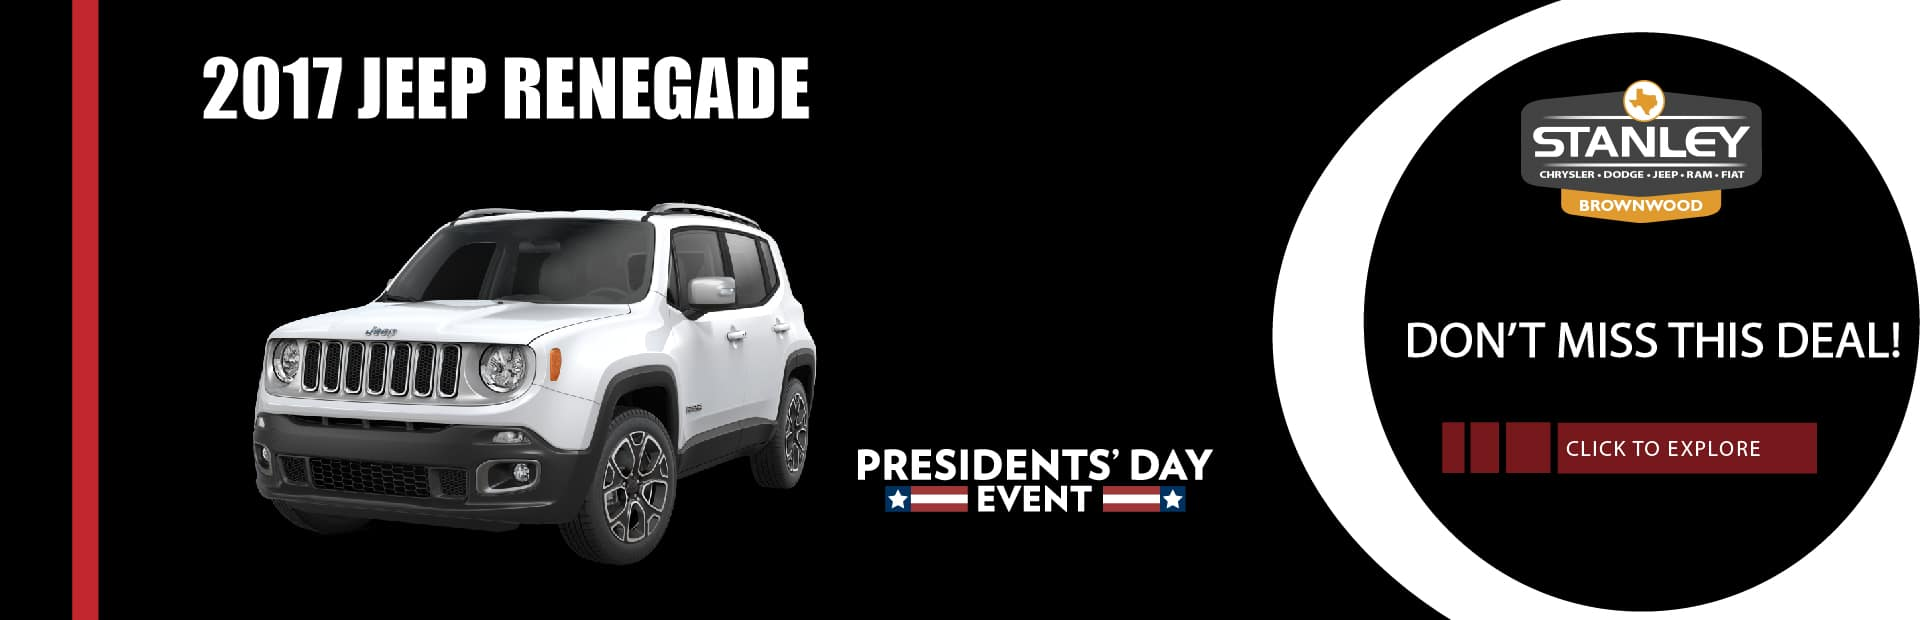 2017 Jeep Renegade Don't Miss This Deal